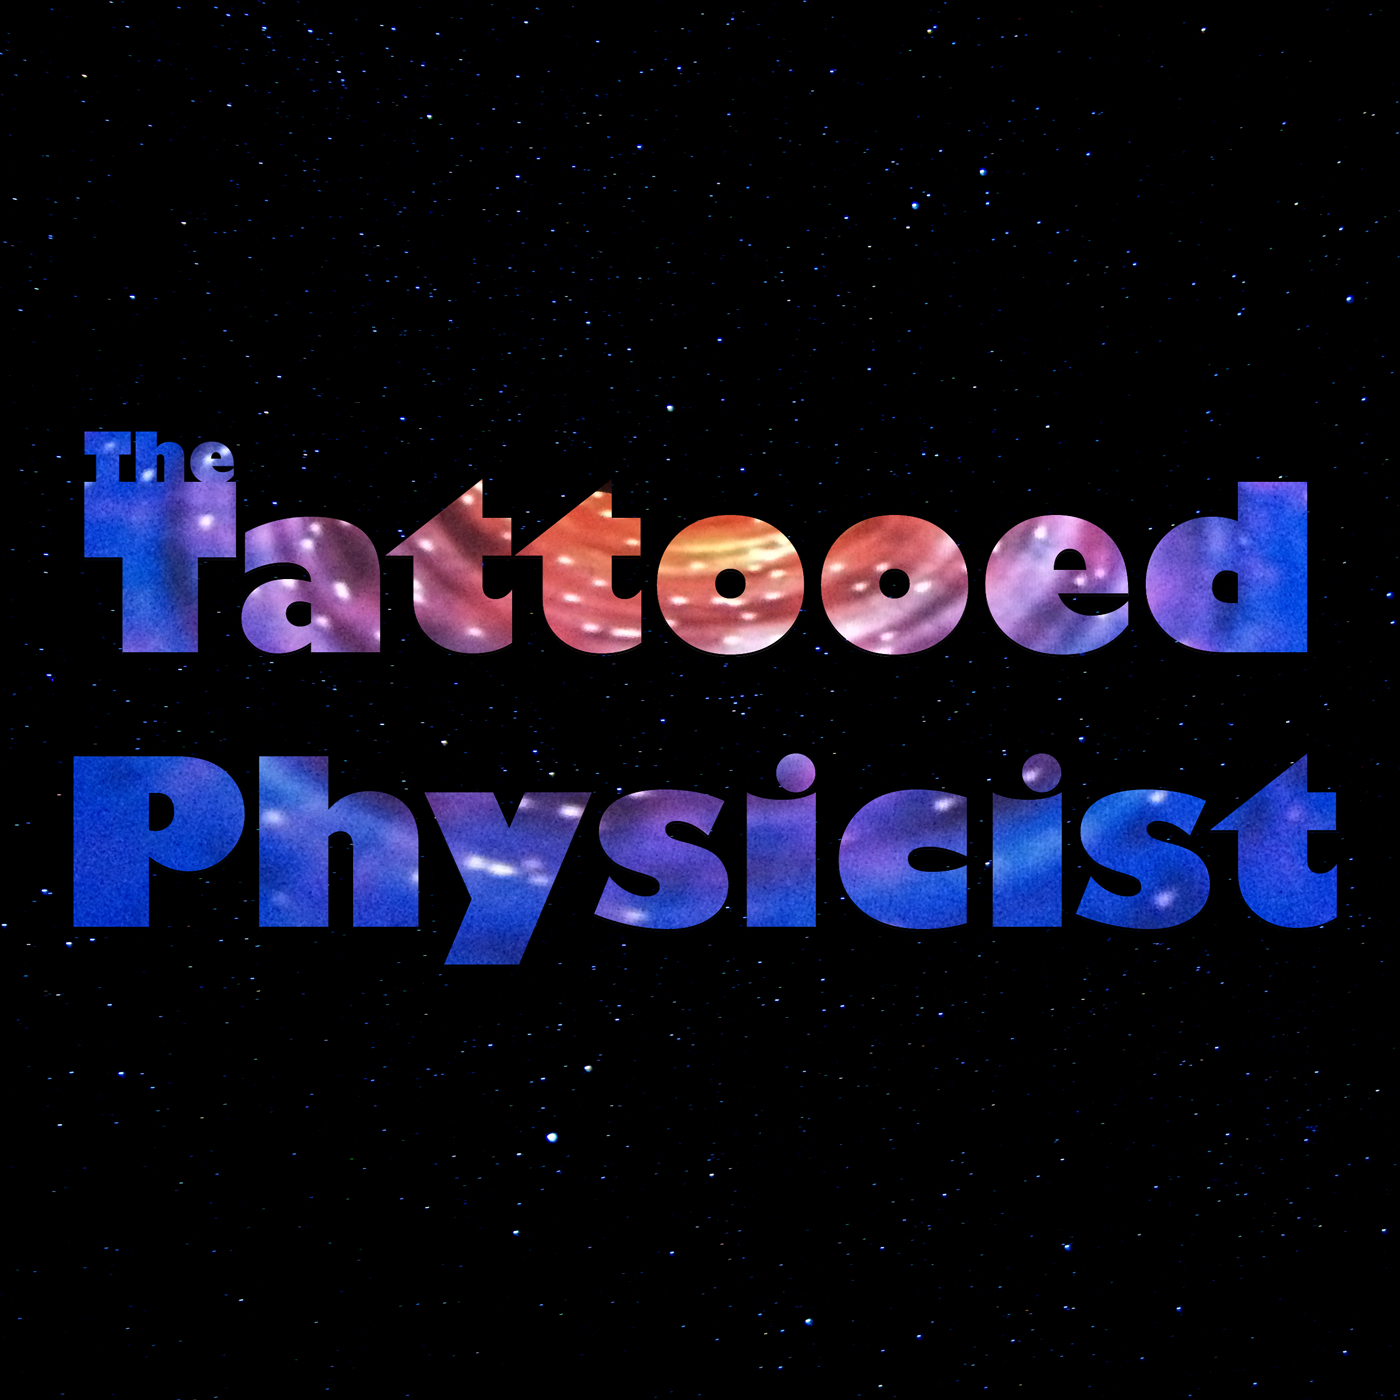 The Tattooed Physicist